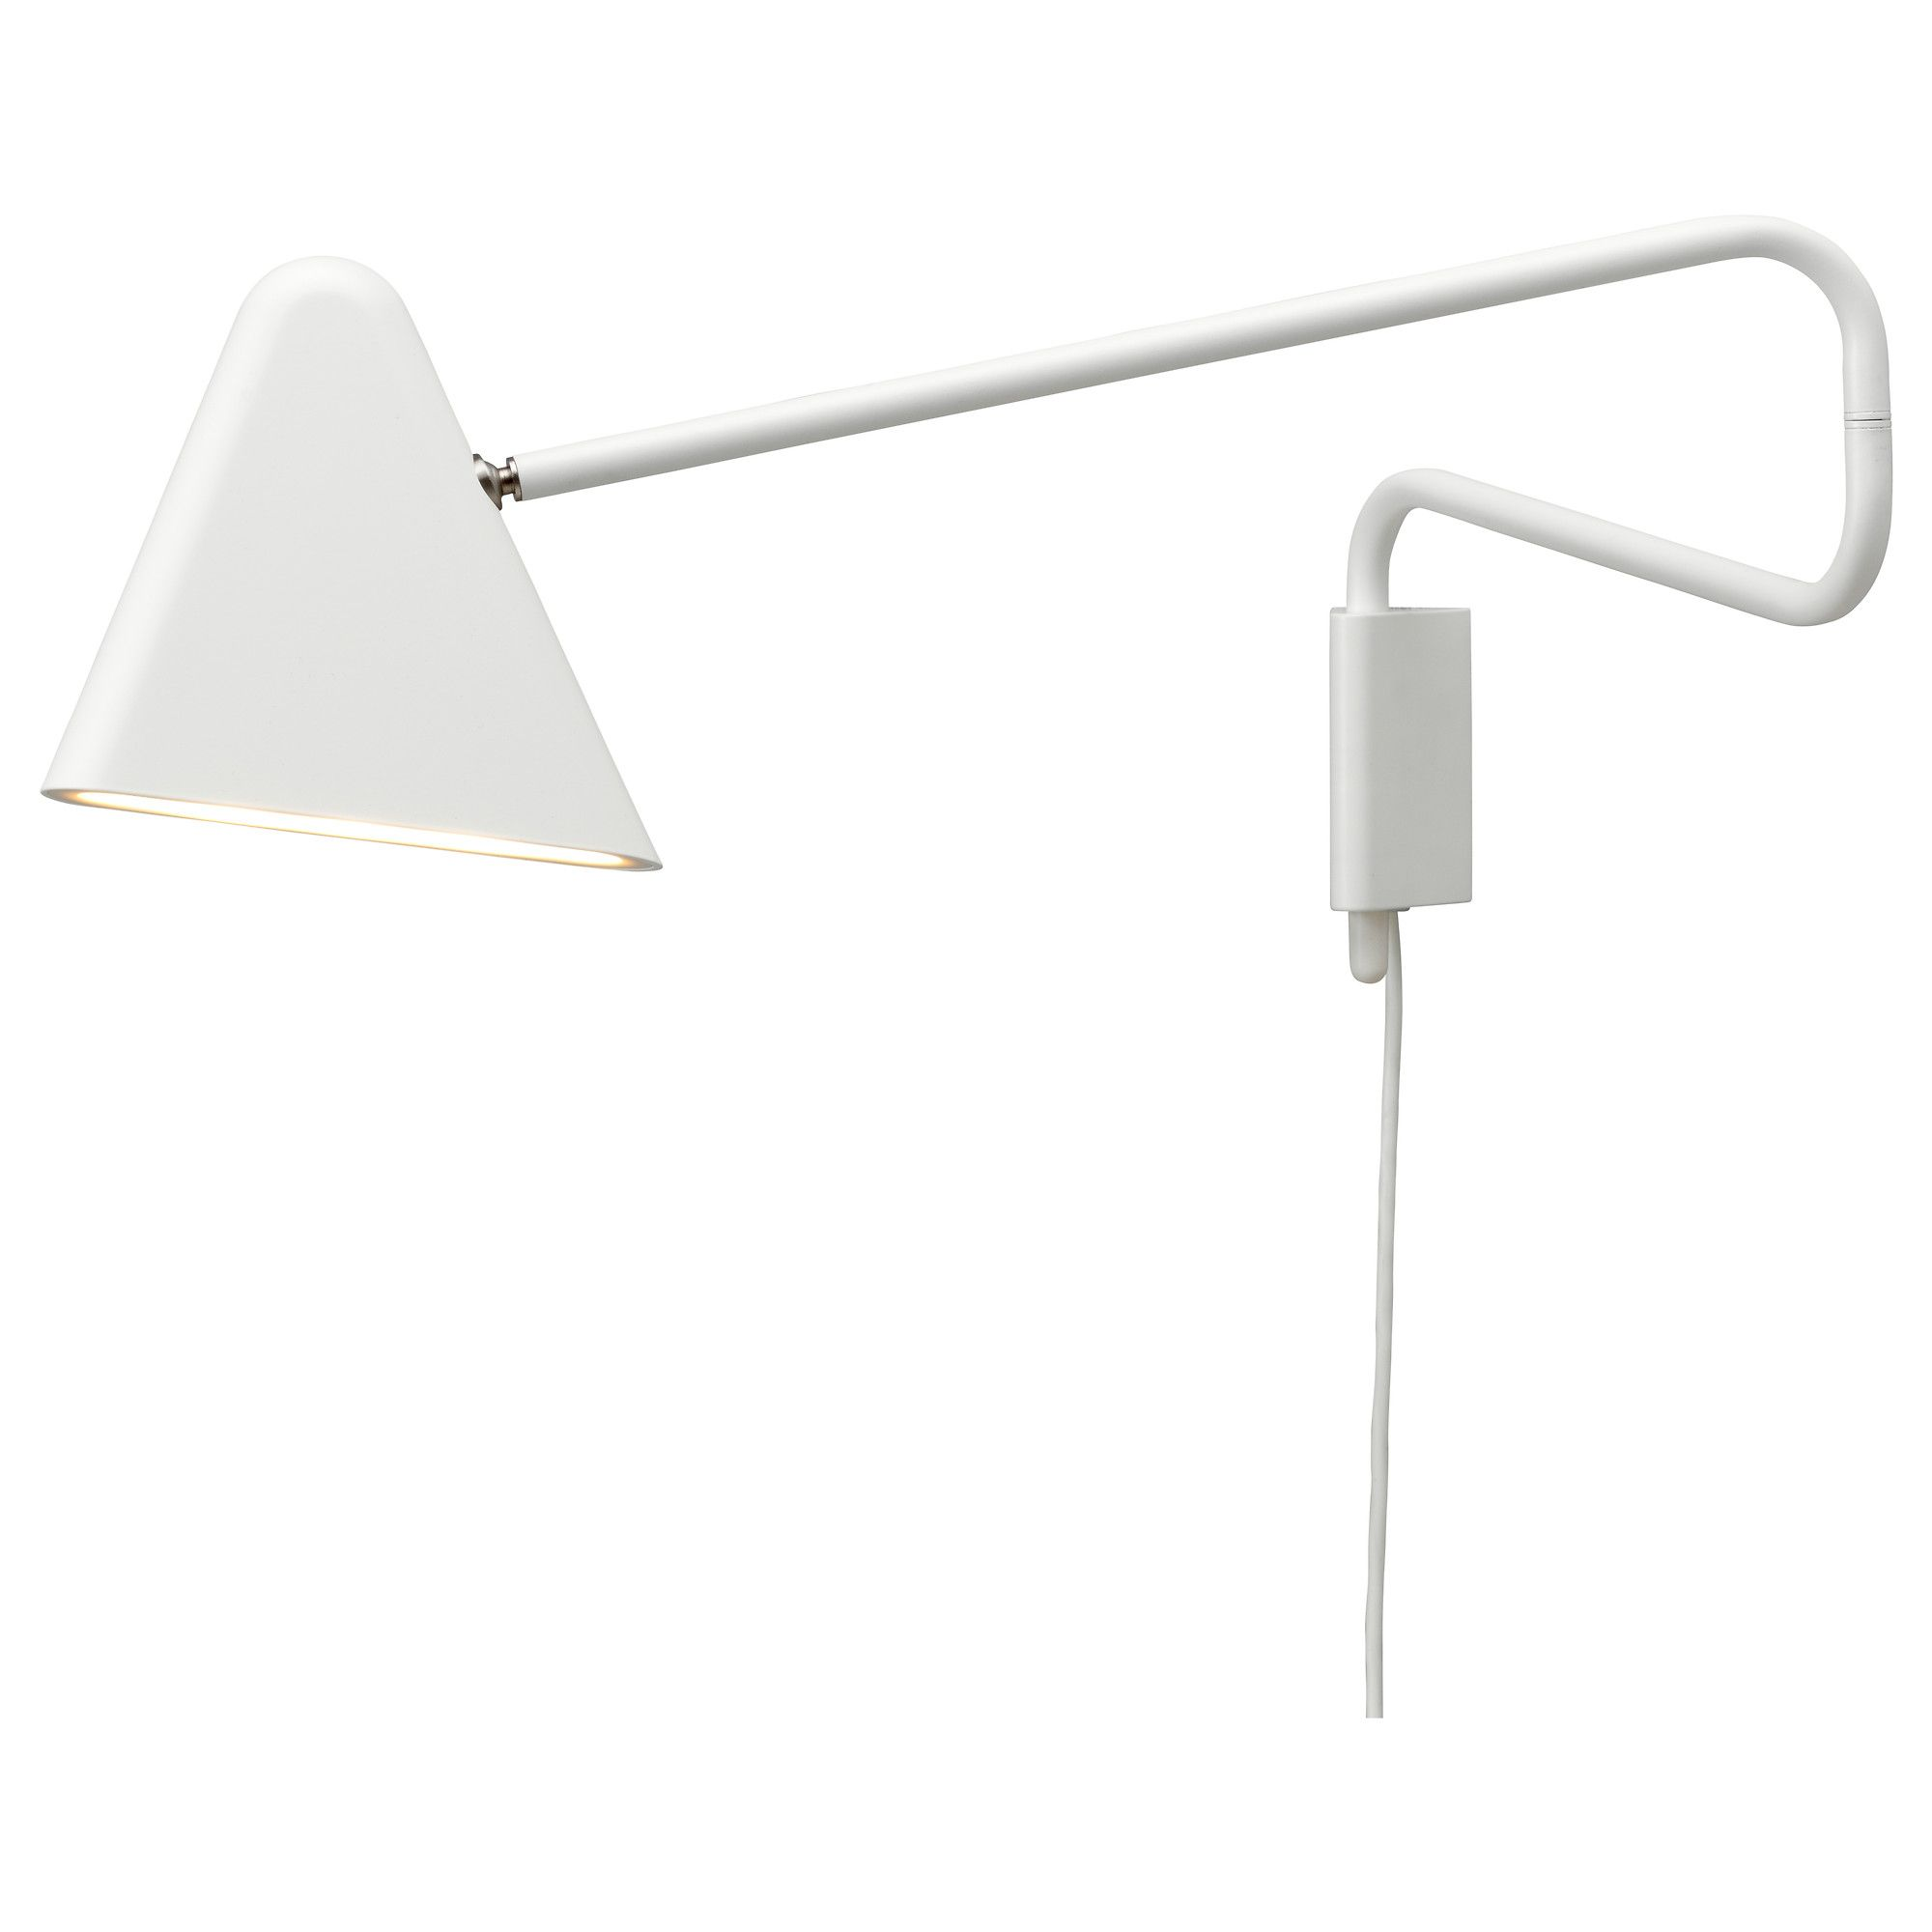 Led Wall Lamp Ikea: IKEA PS 2012 LED Wall Lamp - White - IKEA